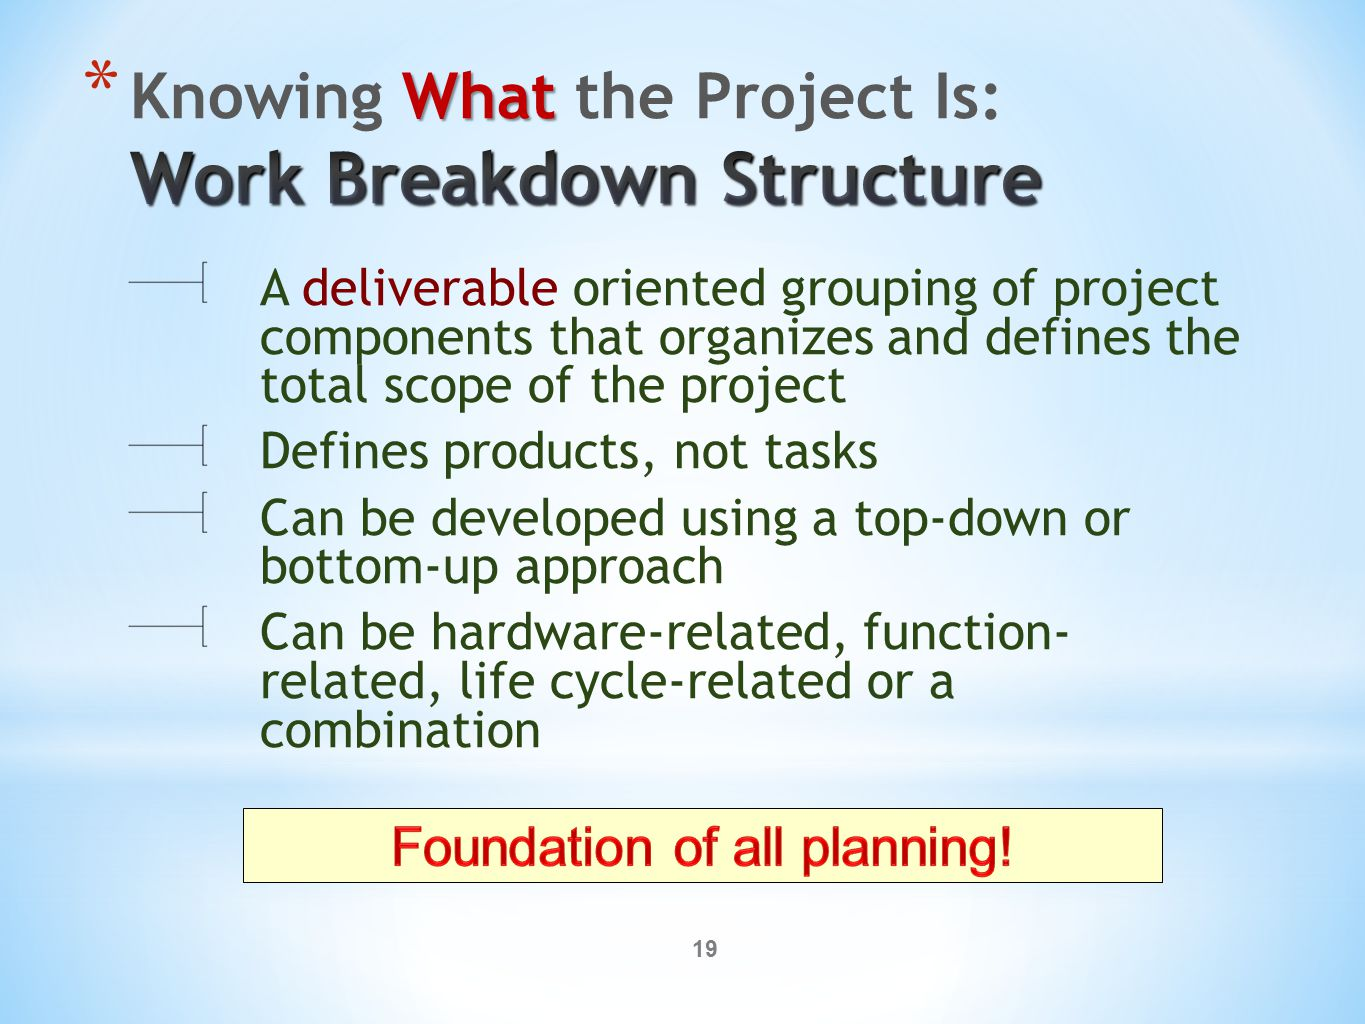 19 A deliverable oriented grouping of project components that organizes and defines the total scope of the project Defines products, not tasks Can be developed using a top-down or bottom-up approach Can be hardware-related, function- related, life cycle-related or a combination